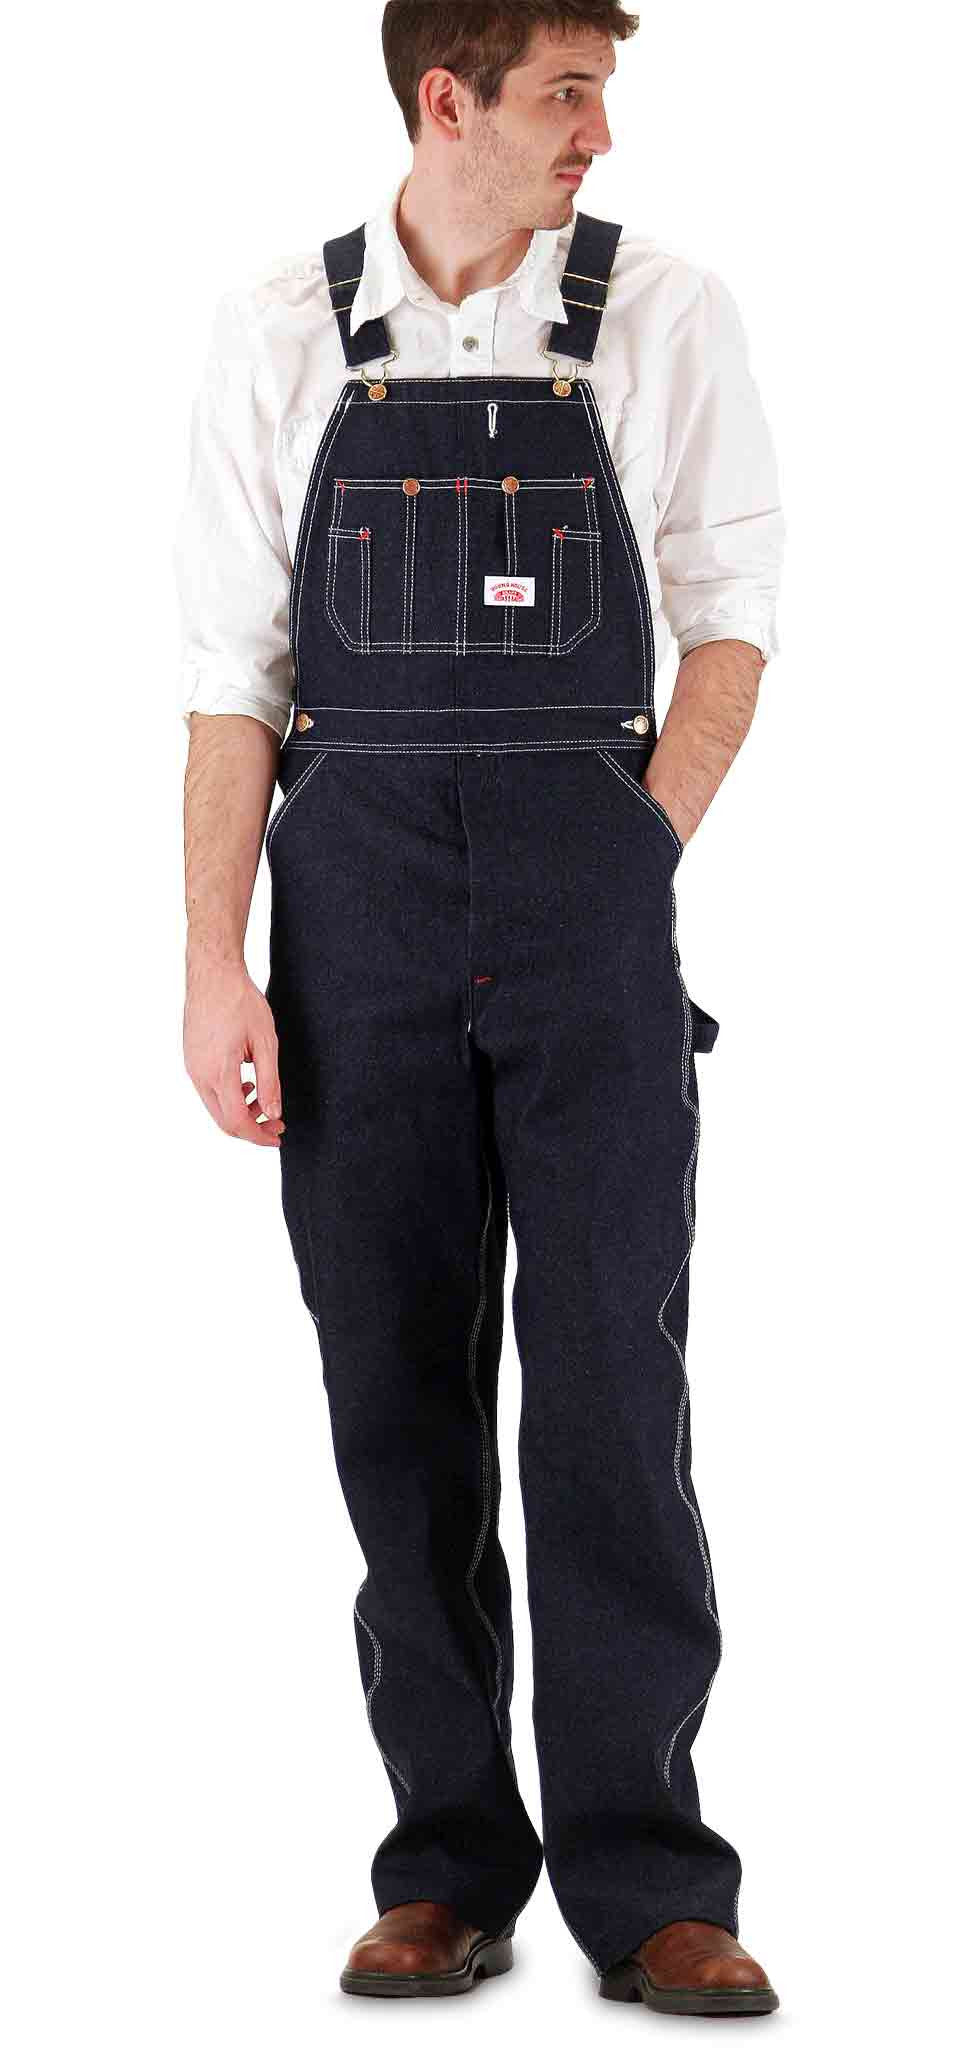 """Details about  /Superb Classic Retro Fiat Studded Navy Boiler Suit Overalls 38-40/"""" Chest"""